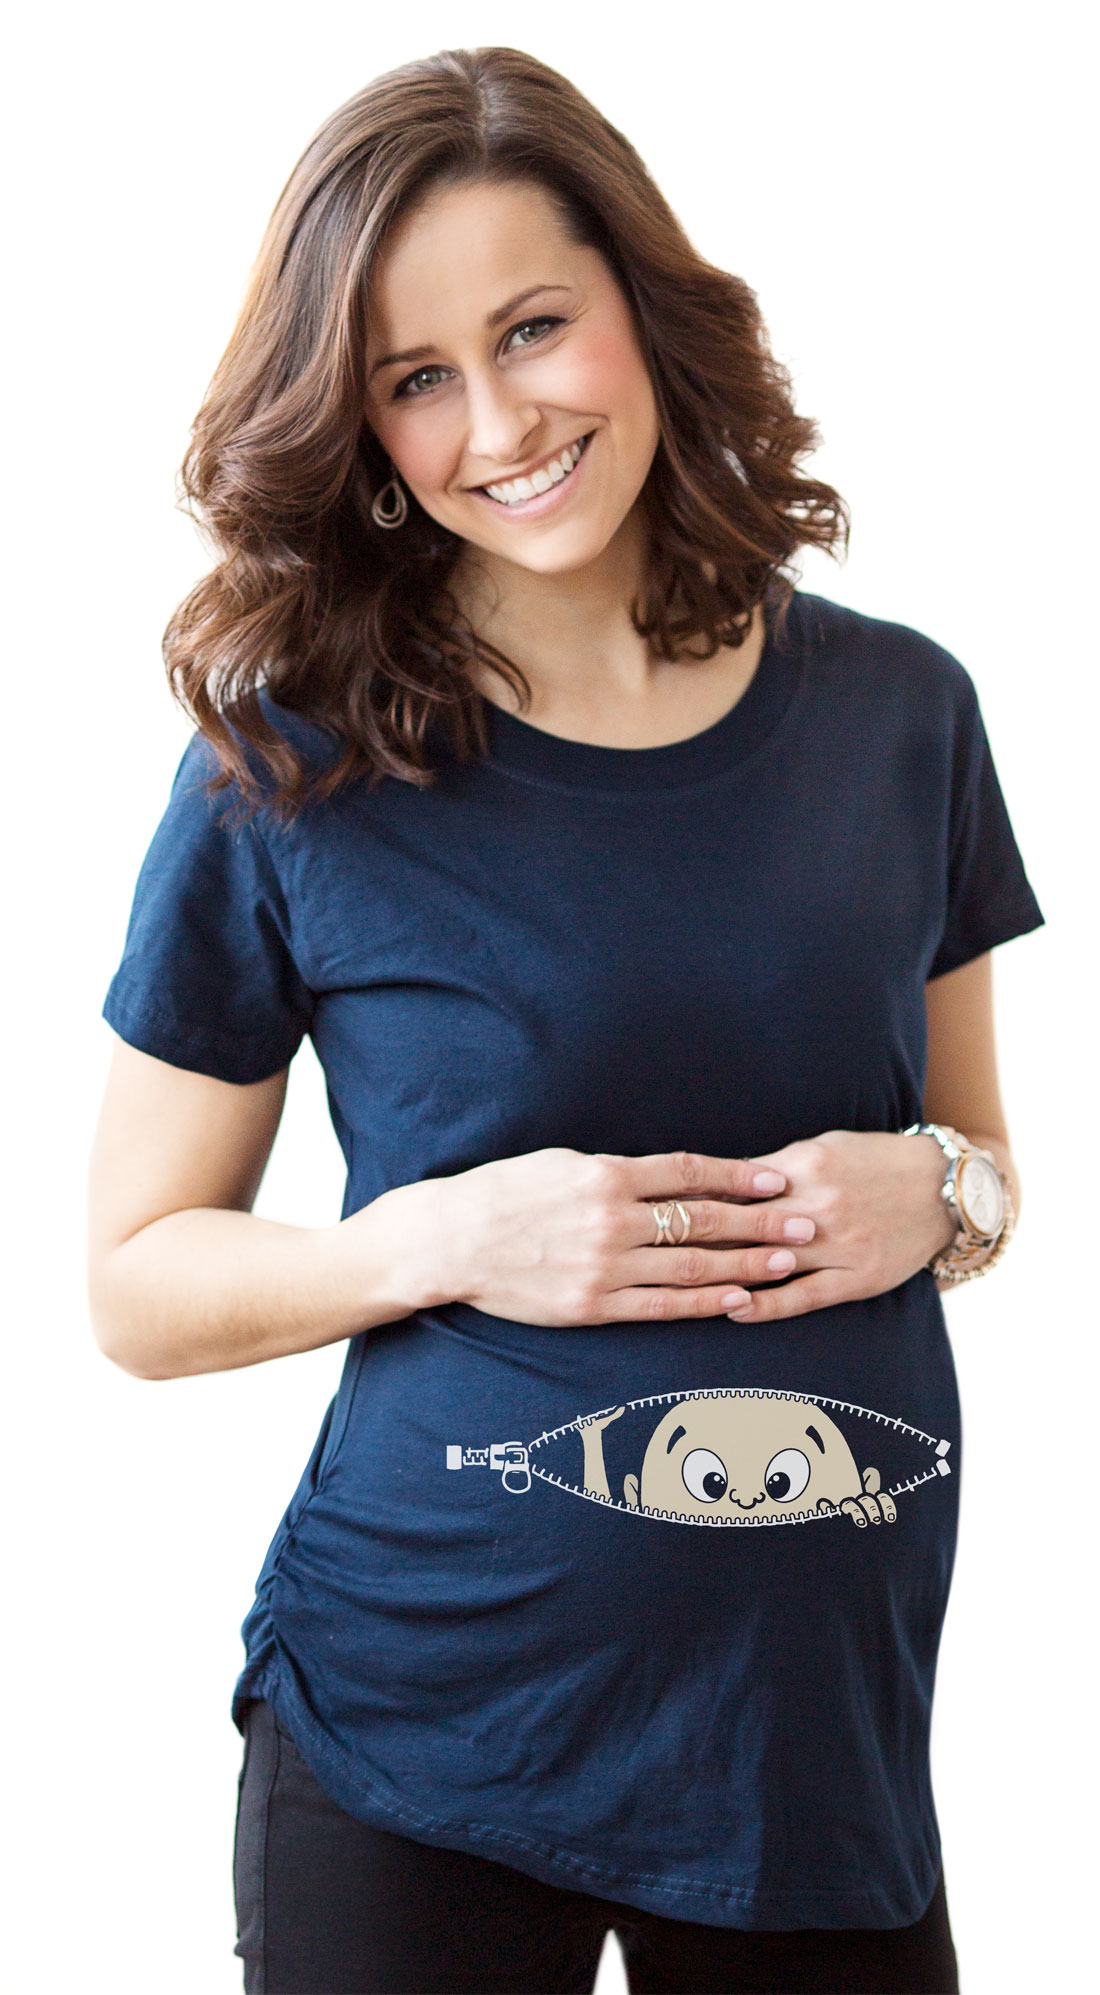 Crazy Dog TShirts - Maternity Baby Peeking T Shirt Funny Pregnancy Tee For Expecting Mothers